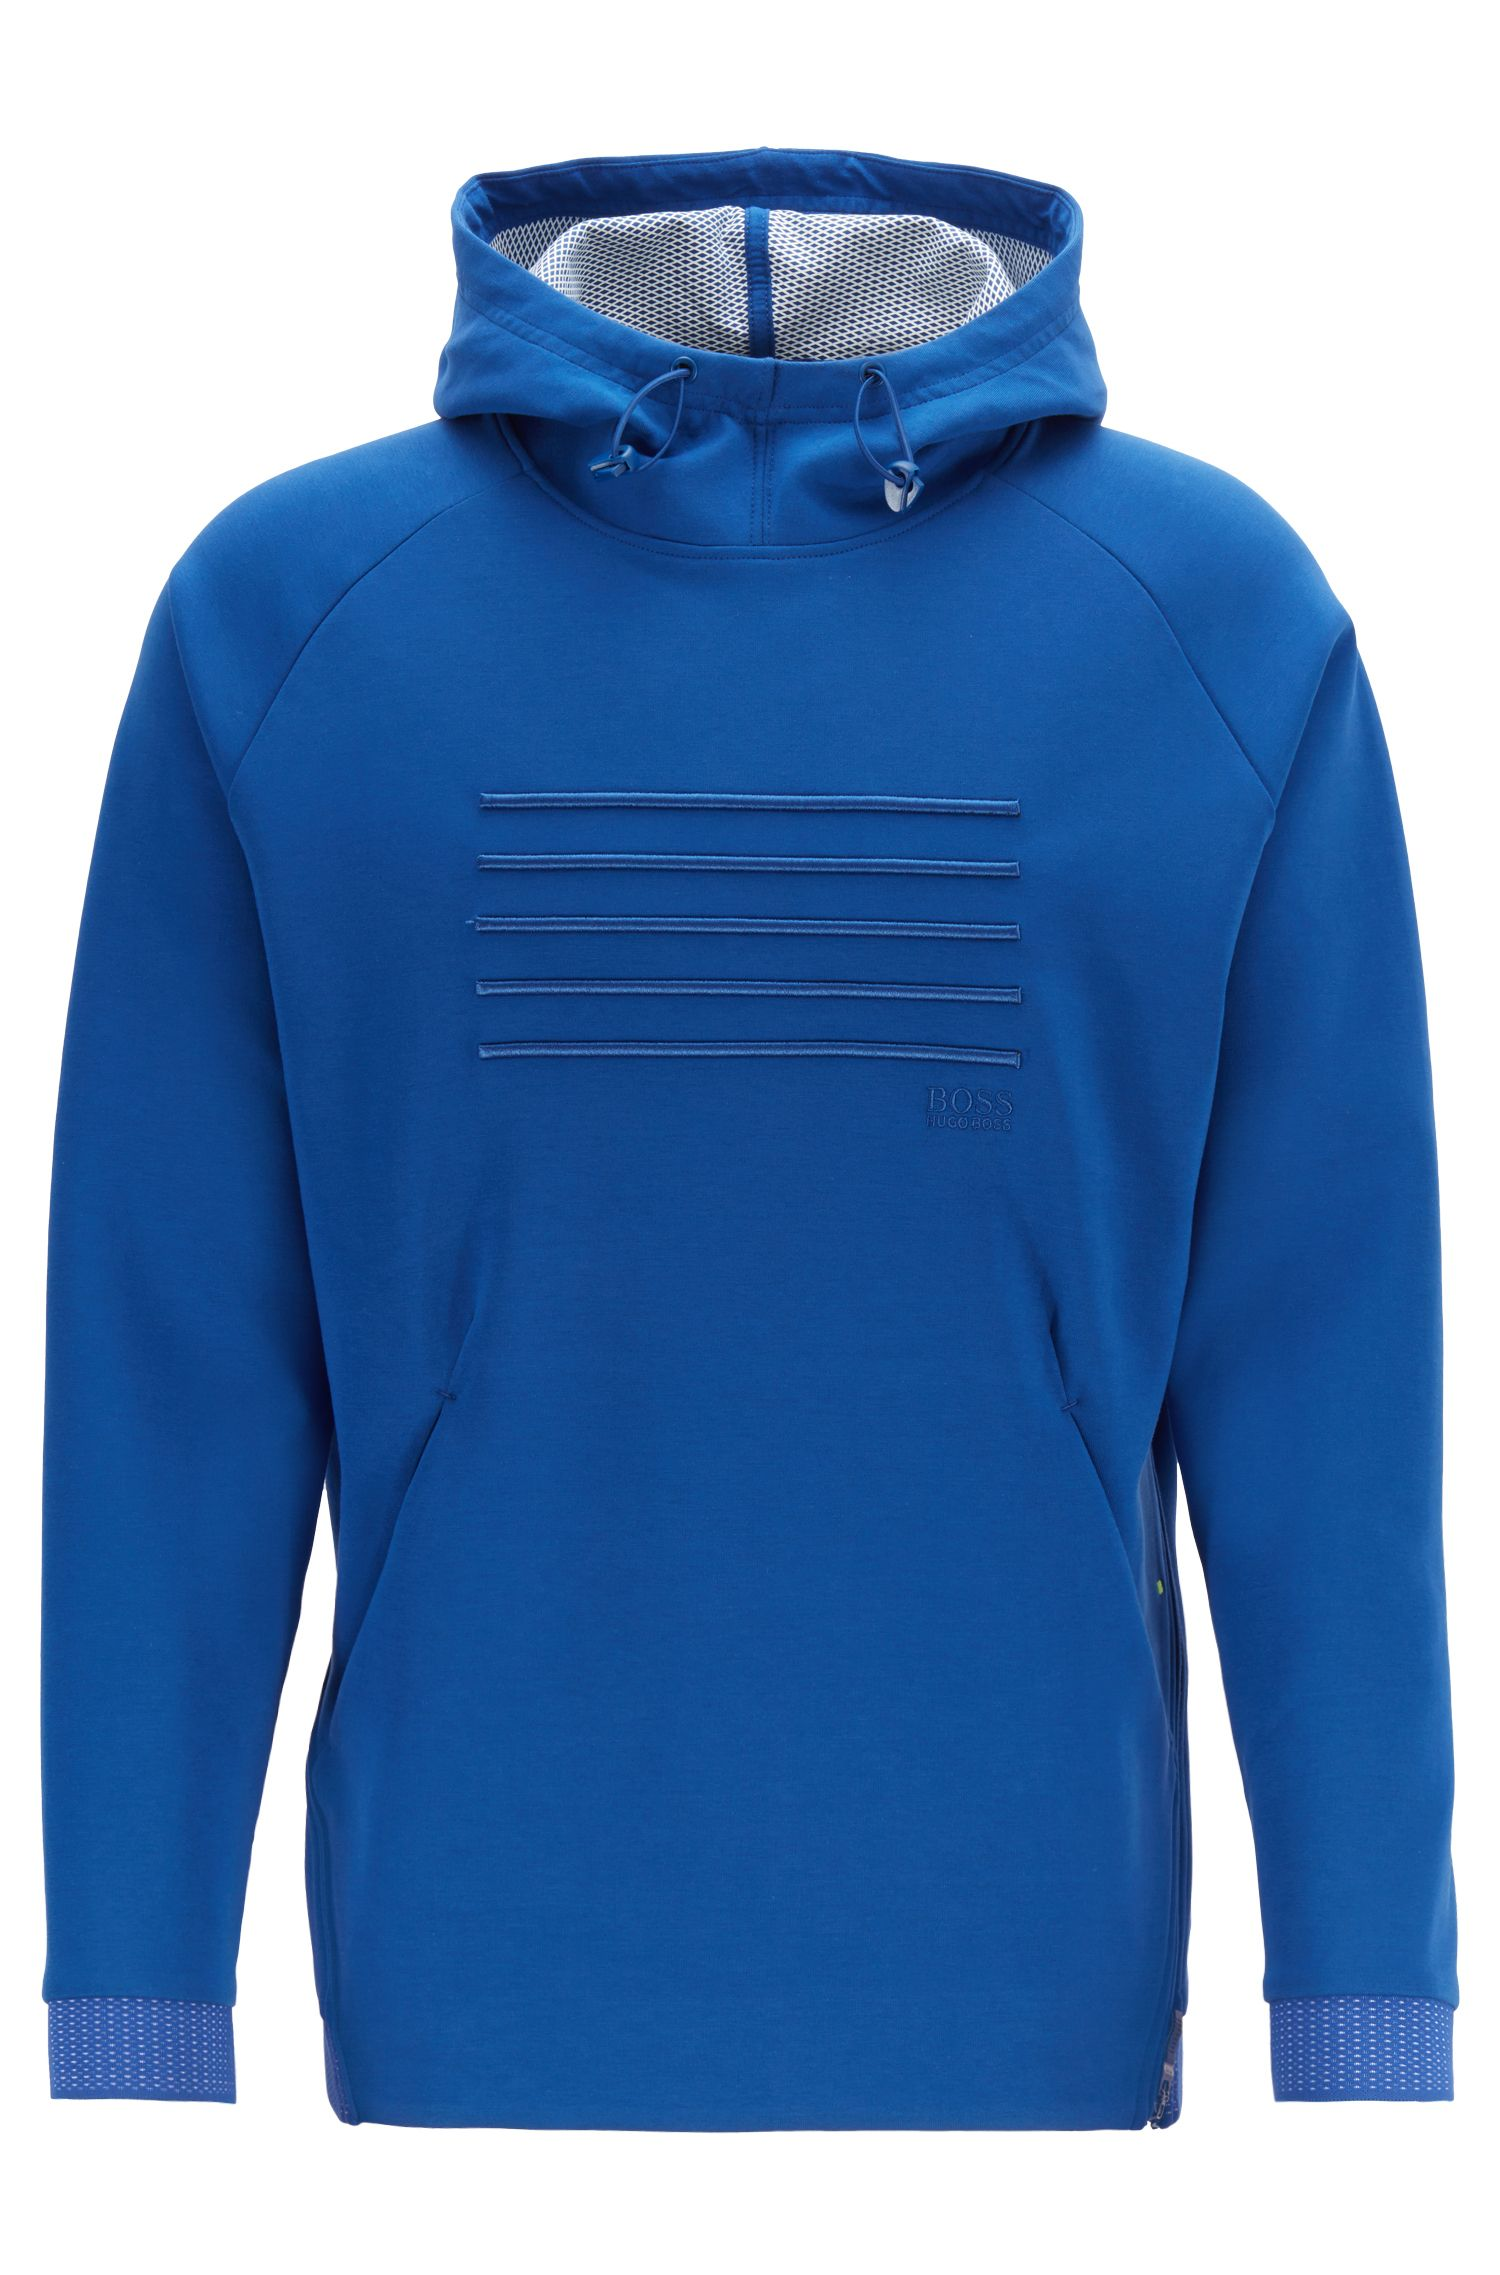 Relaxed-fit hooded sweatshirt with zipper detail, Open Blue